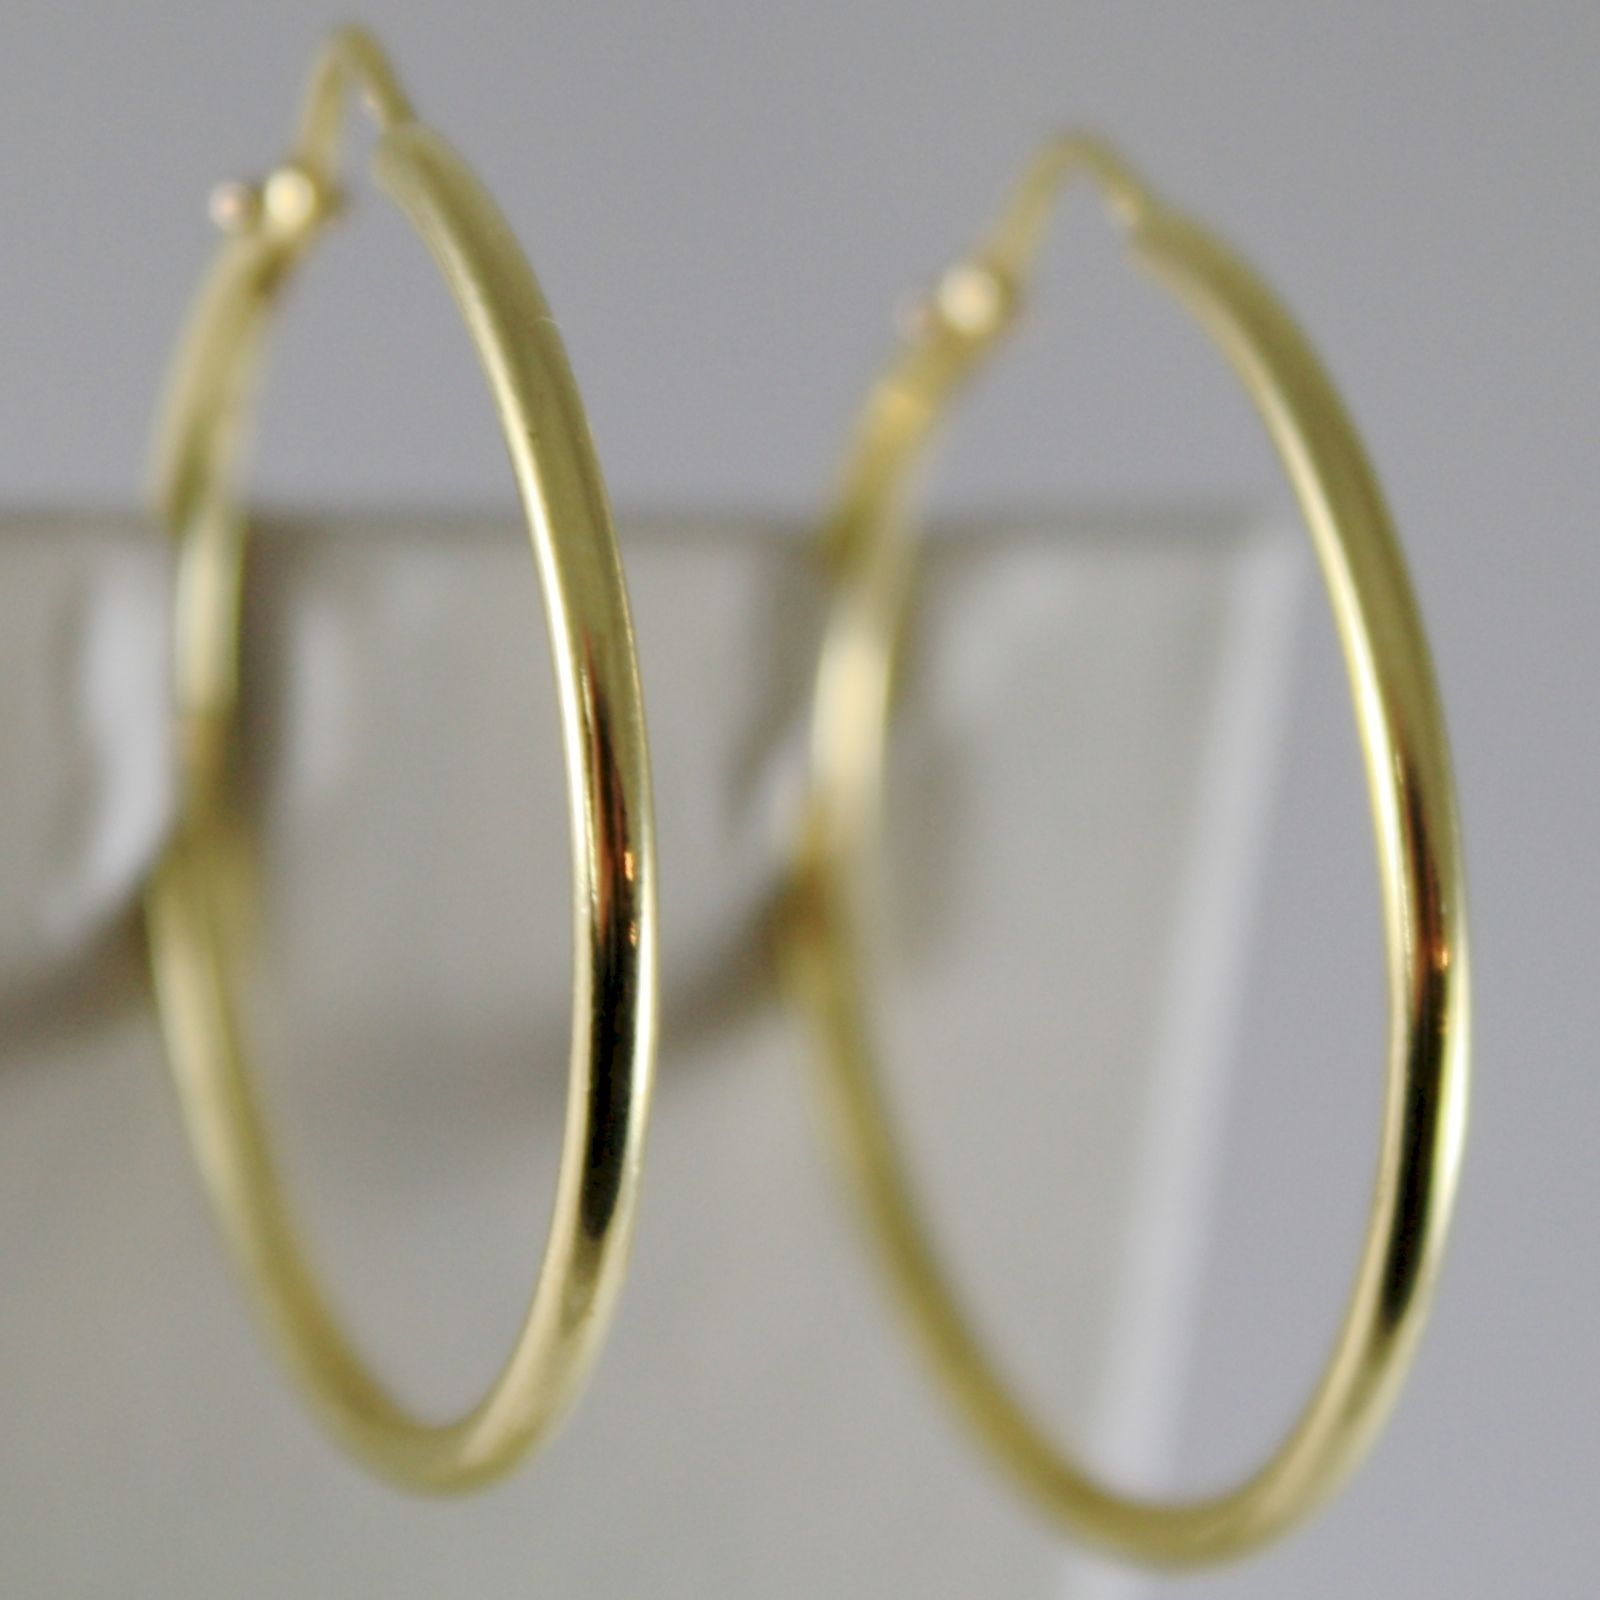 18K YELLOW GOLD EARRINGS CIRCLE HOOP 28 MM 1.10 INCHES DIAMETER MADE IN ITALY